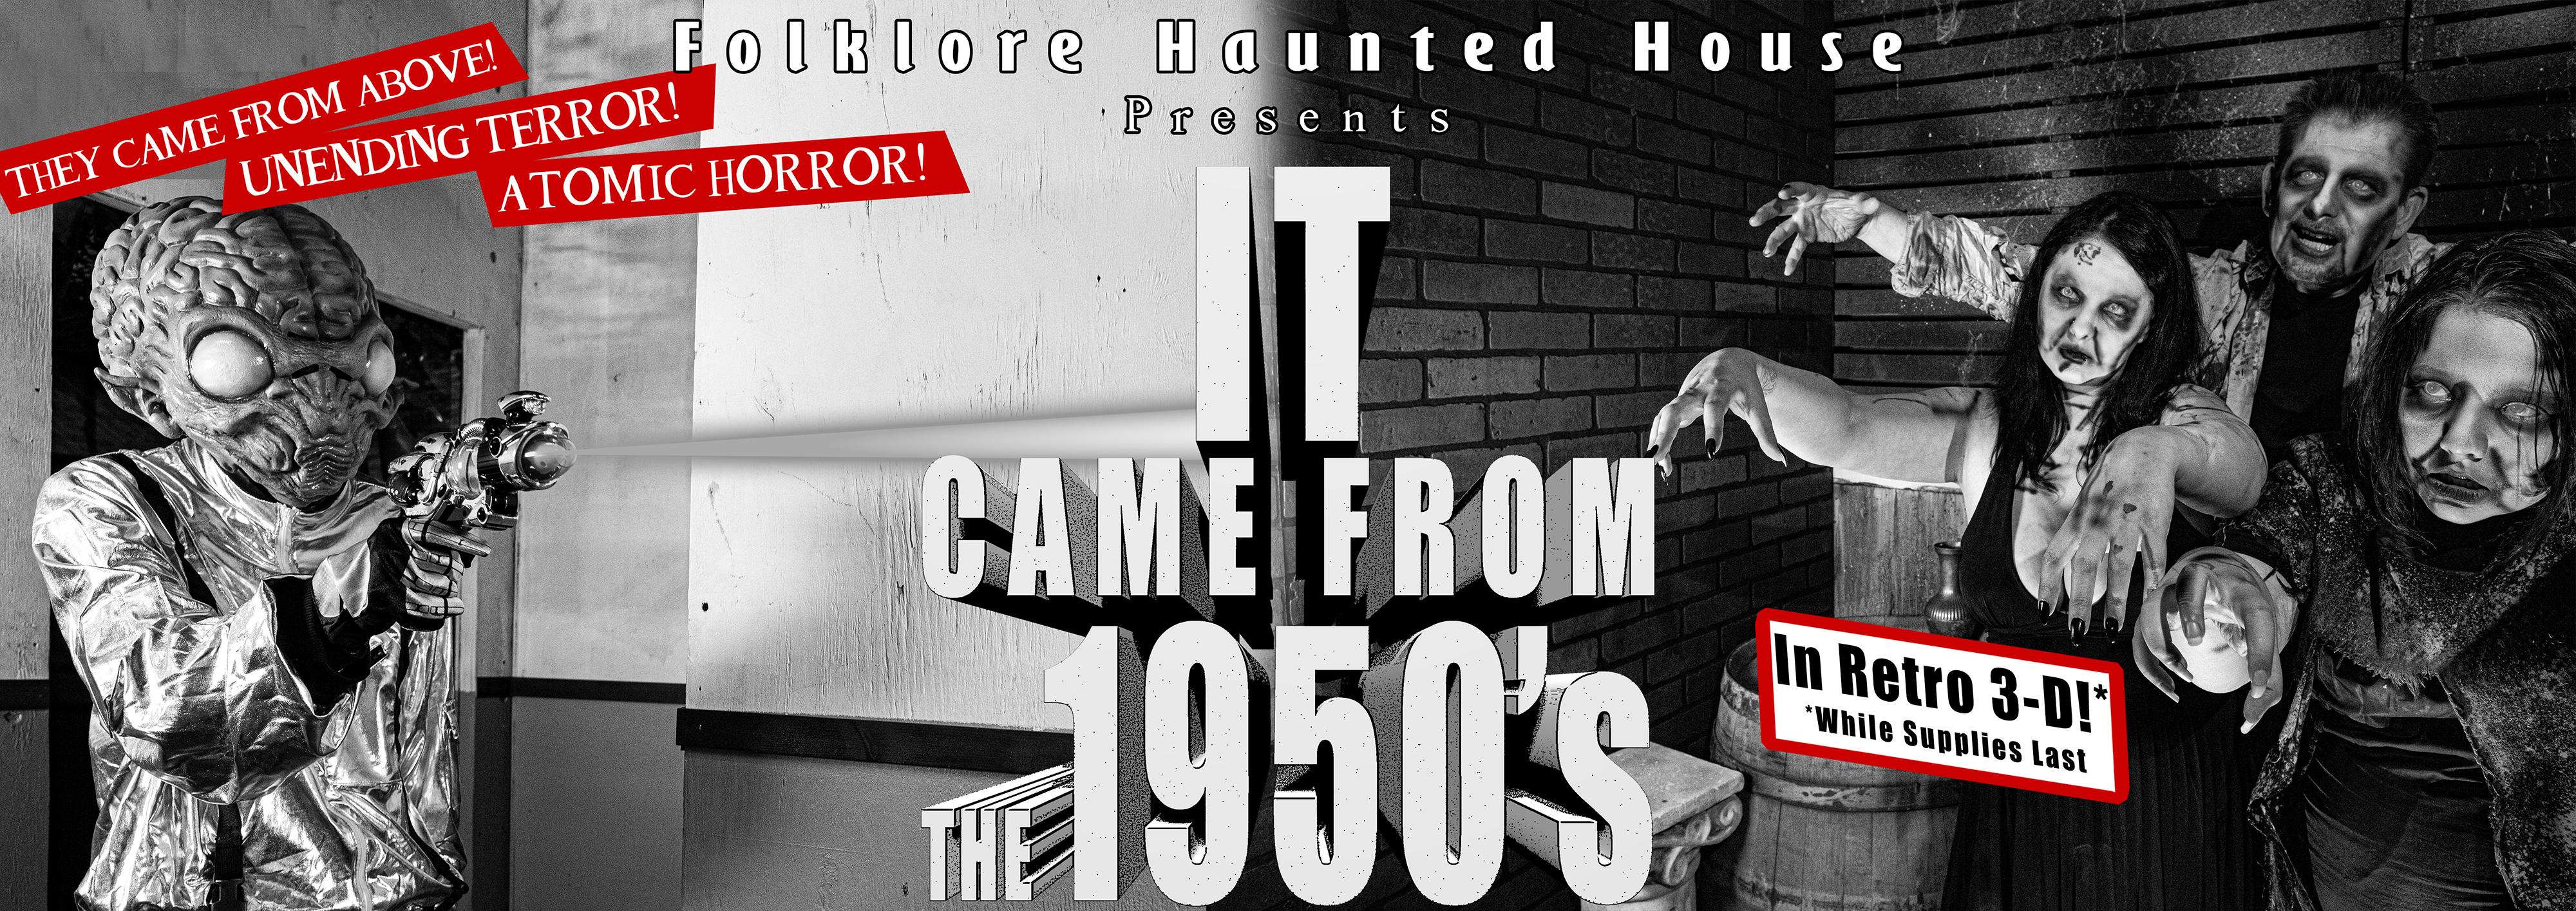 Folklore Haunted House 2021